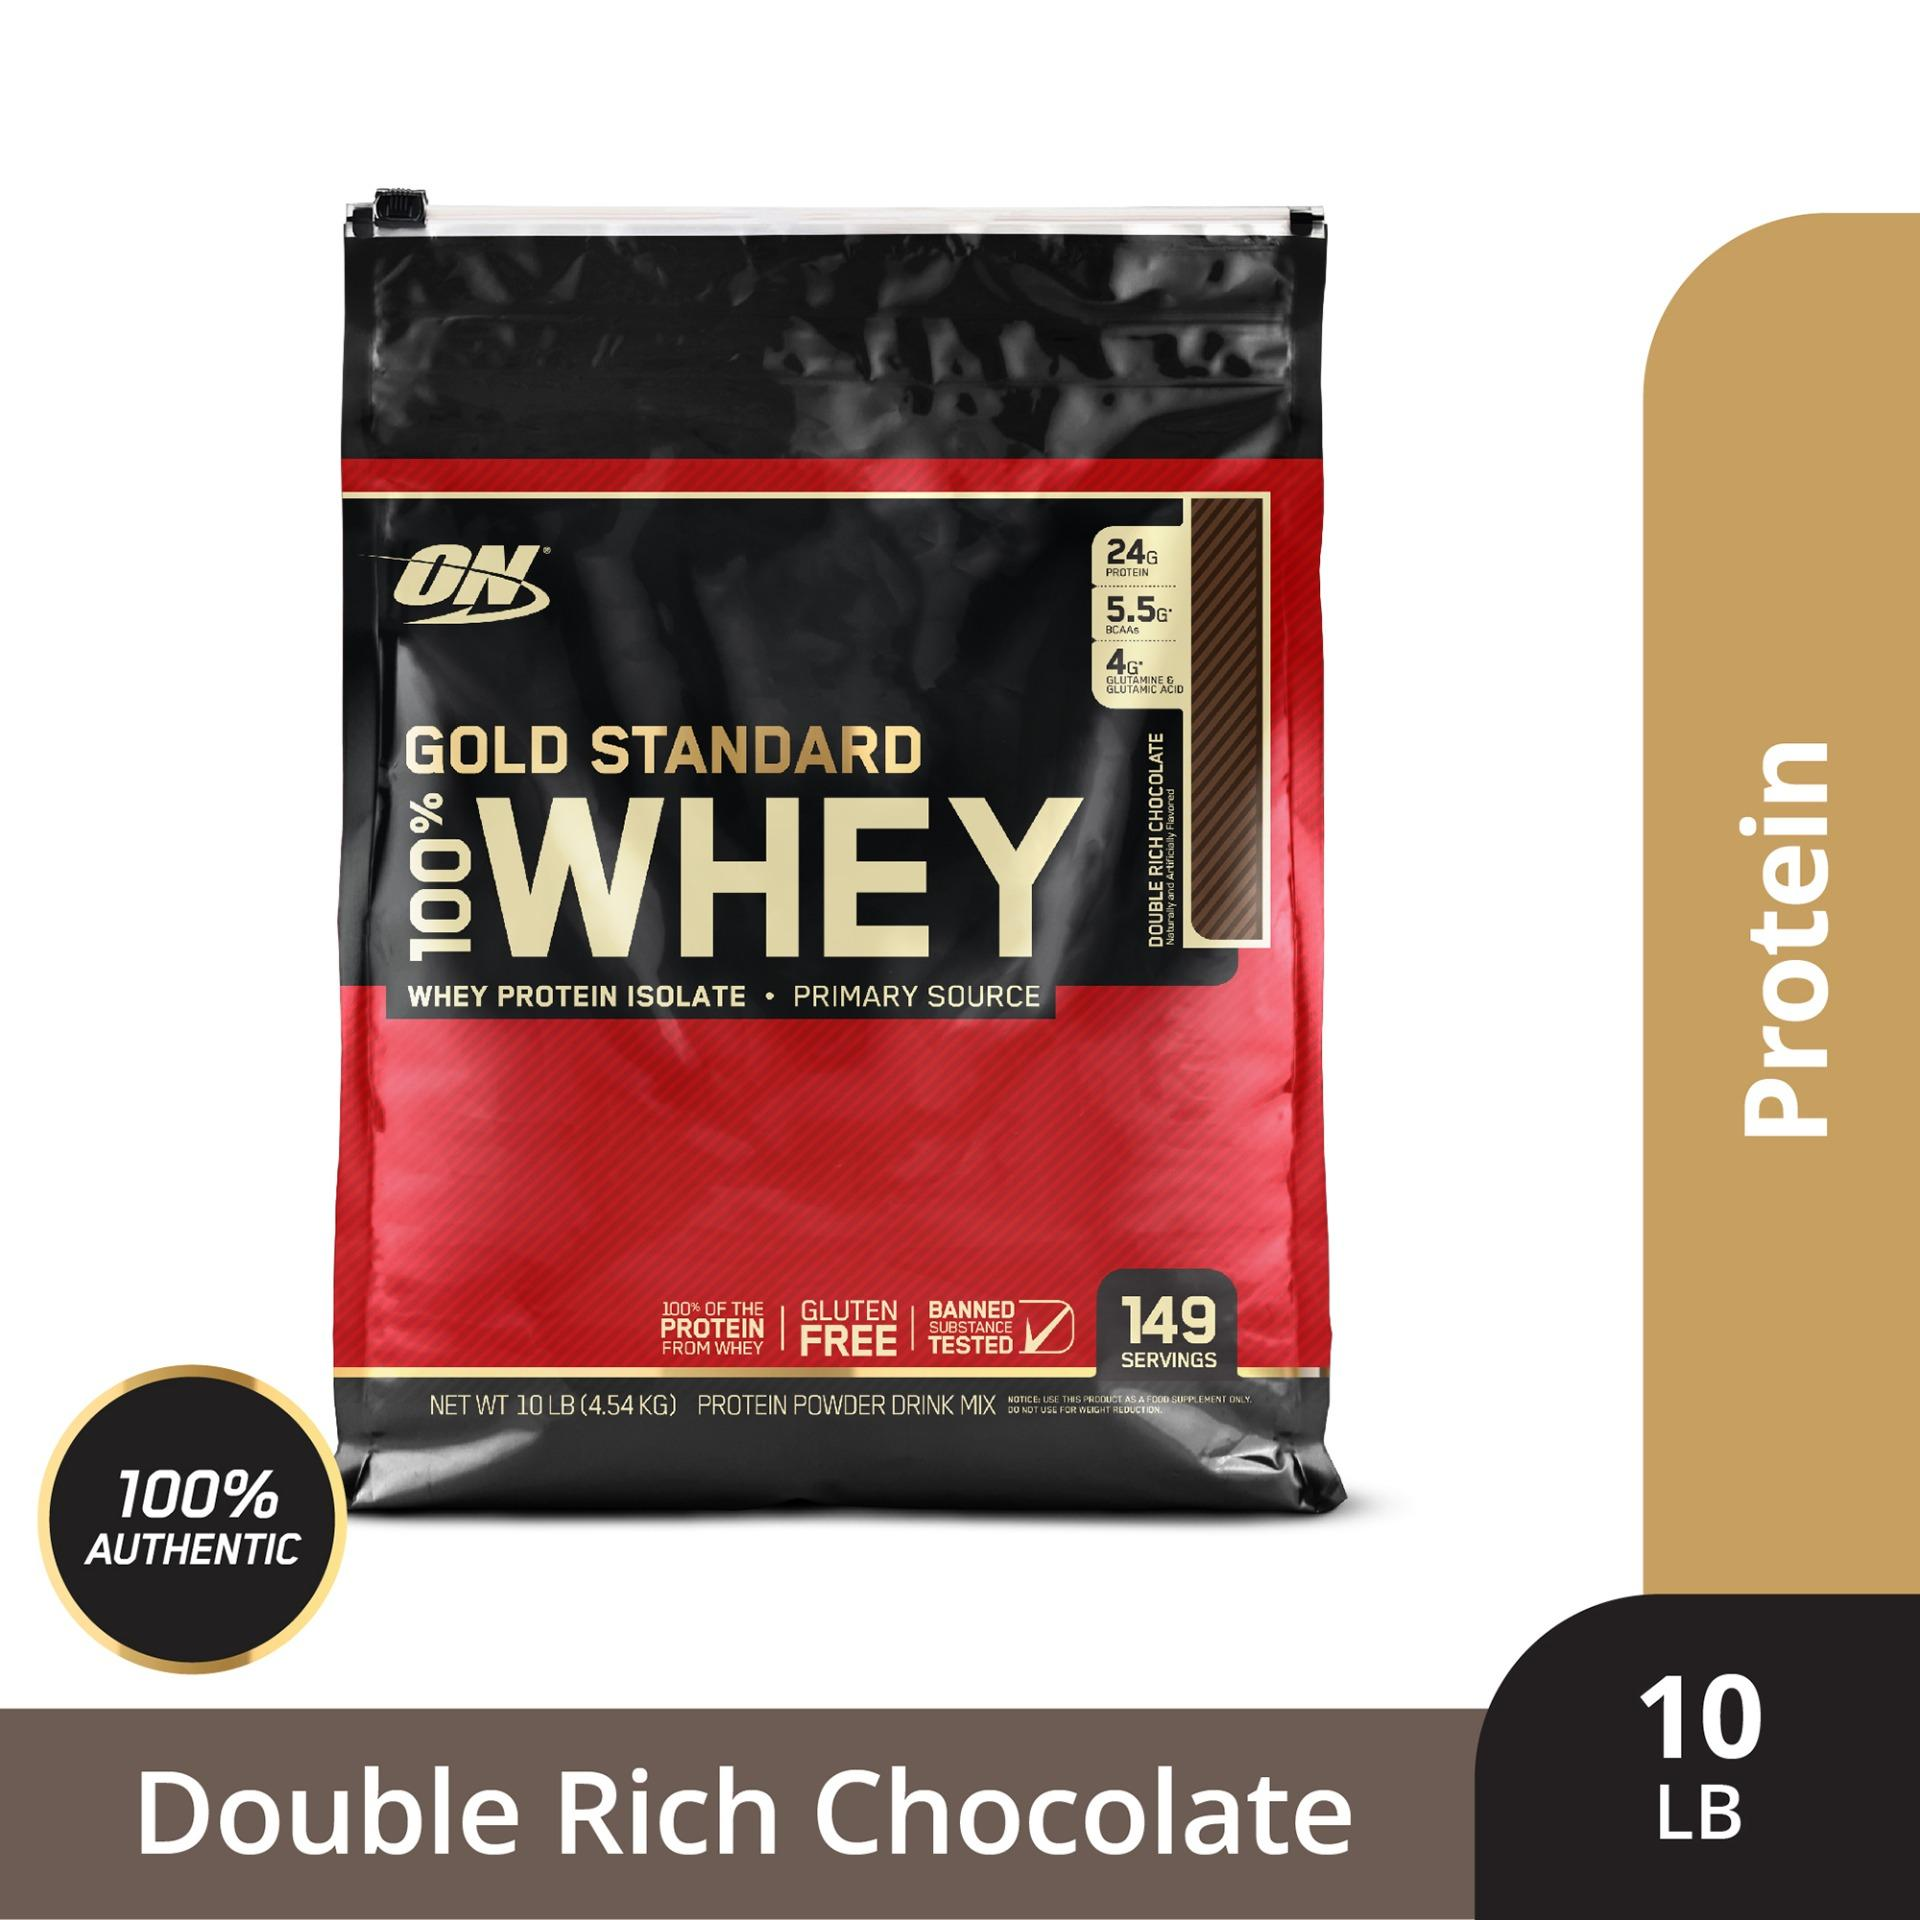 Thực phẩm bổ sung Optimum NutritionGold Standard 100% Whey Double Rich Chocolate10 lbs